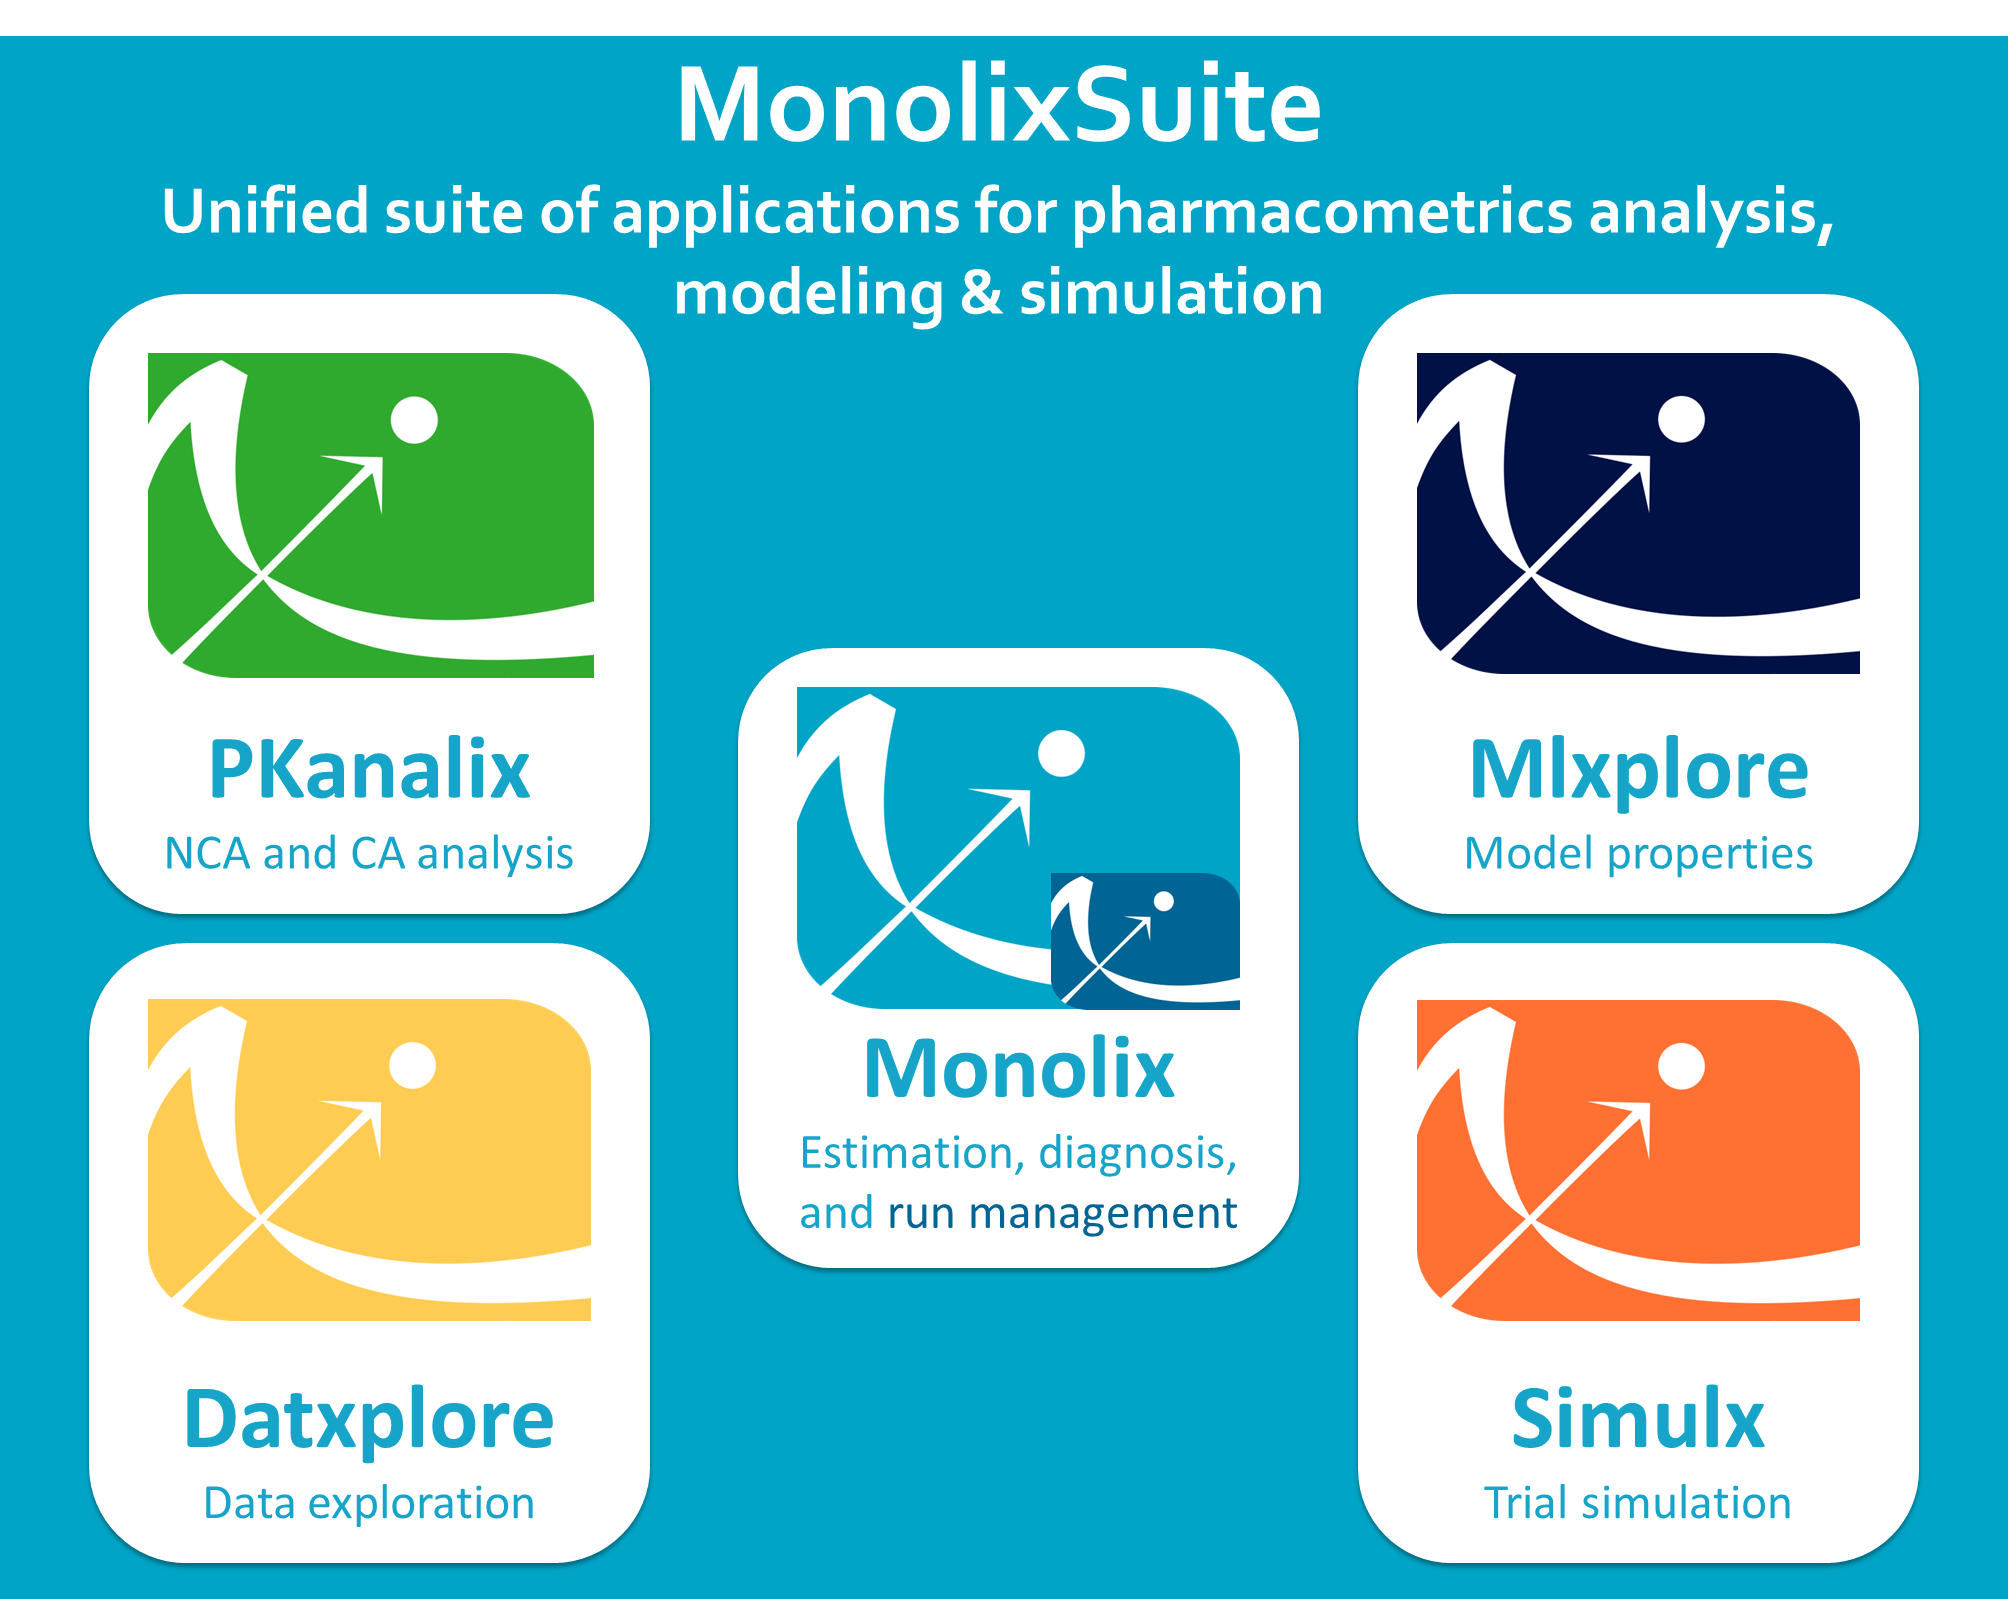 MonolixSuite Workshop (University of Forida, Thu. October 24th, 2019)